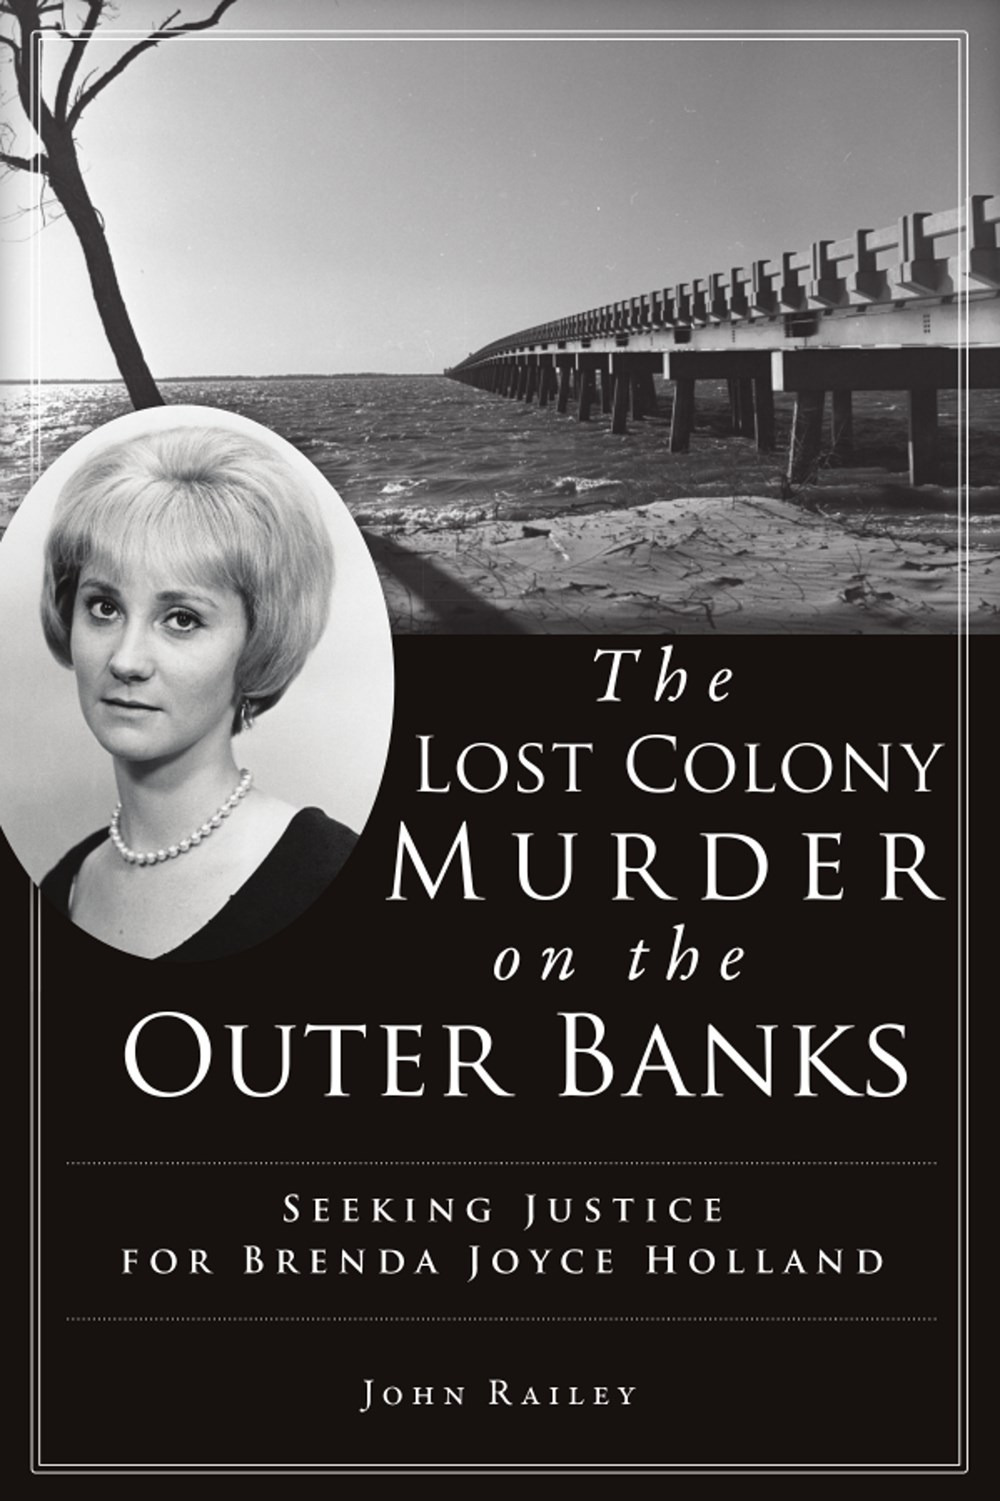 The Lost Colony Murder